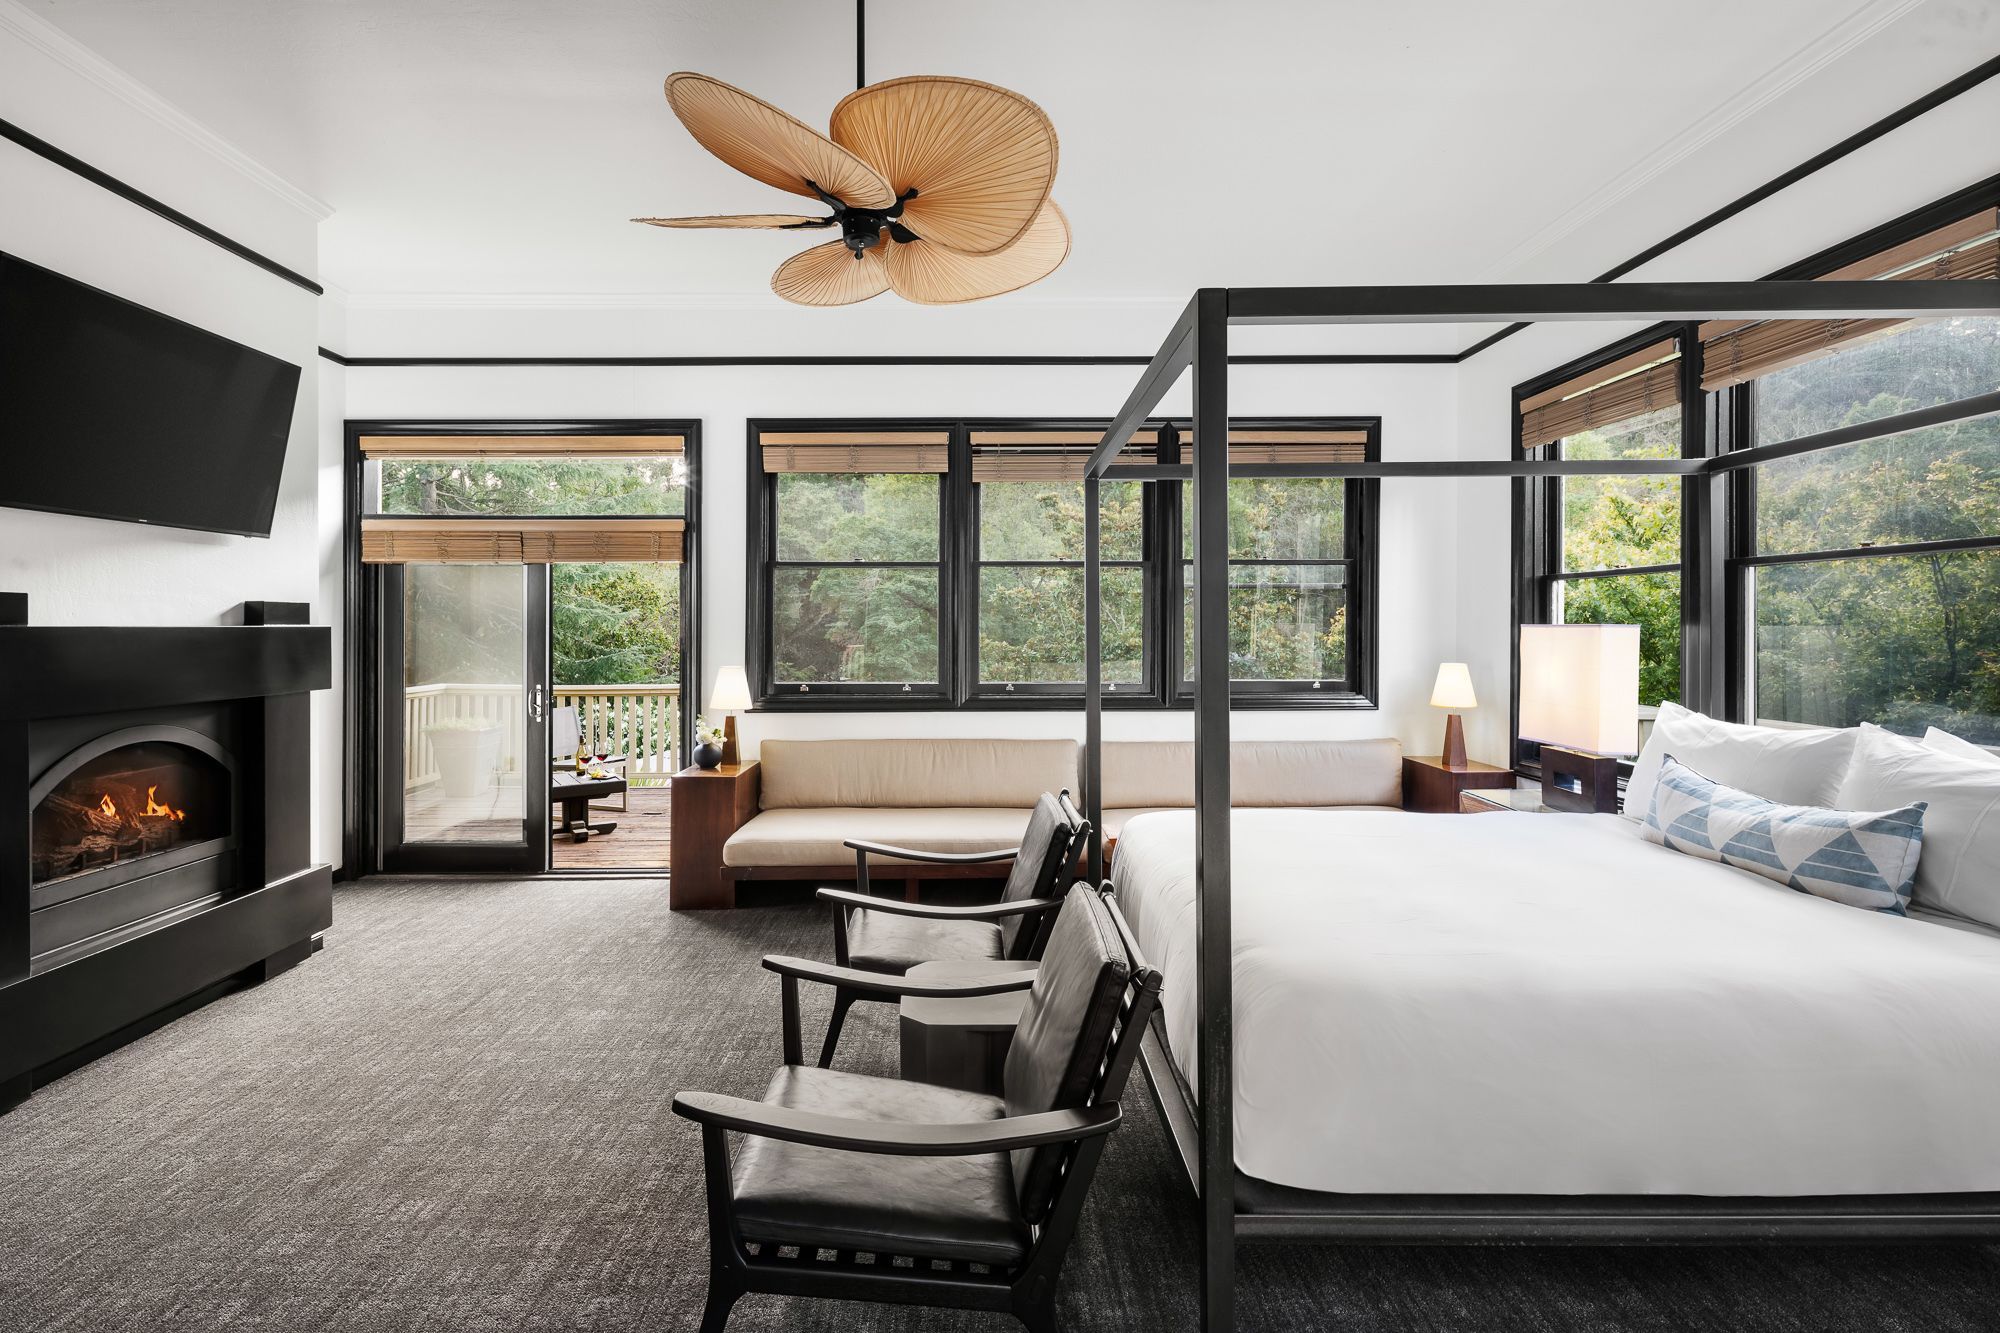 Gaige Suite in Sonoma Valley | Gaige House + Ryokan